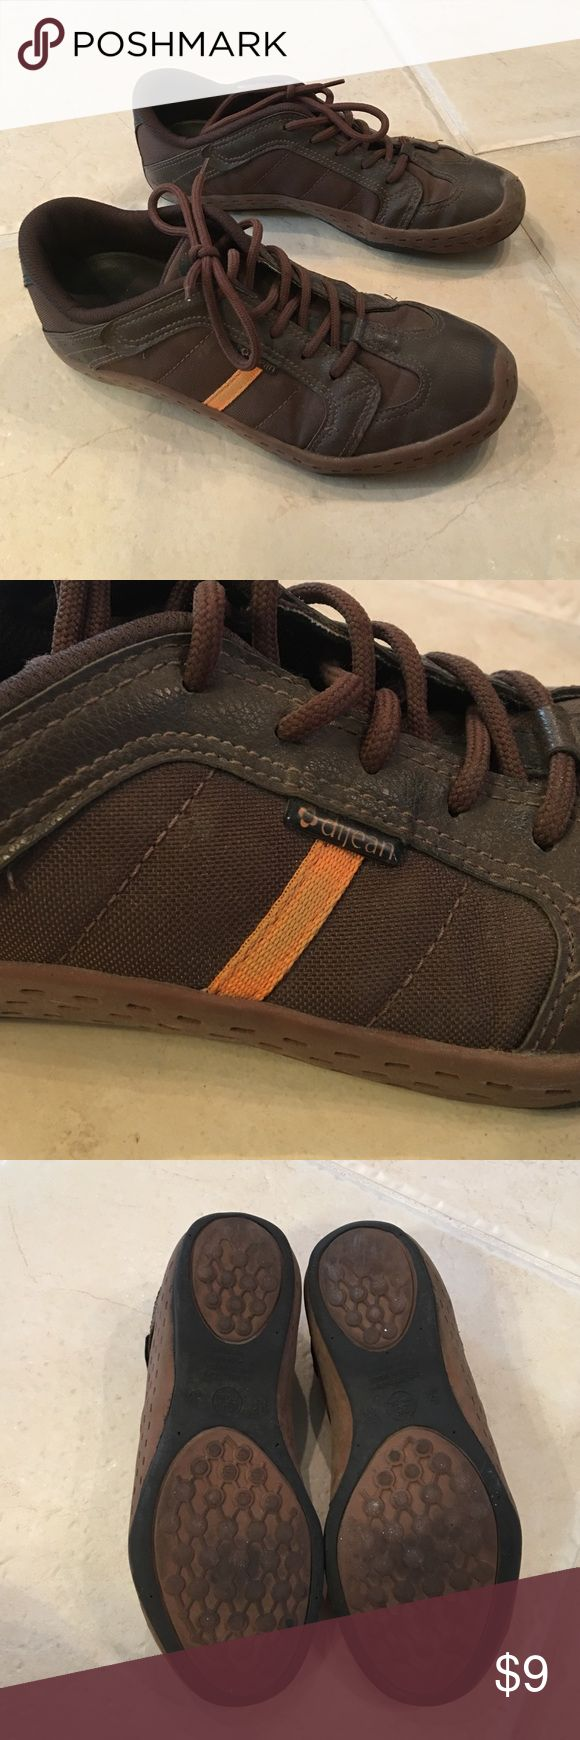 Dijean tennis shoes. Shoes are from Brasil. Used condition but still have life to give. Shoes Sneakers